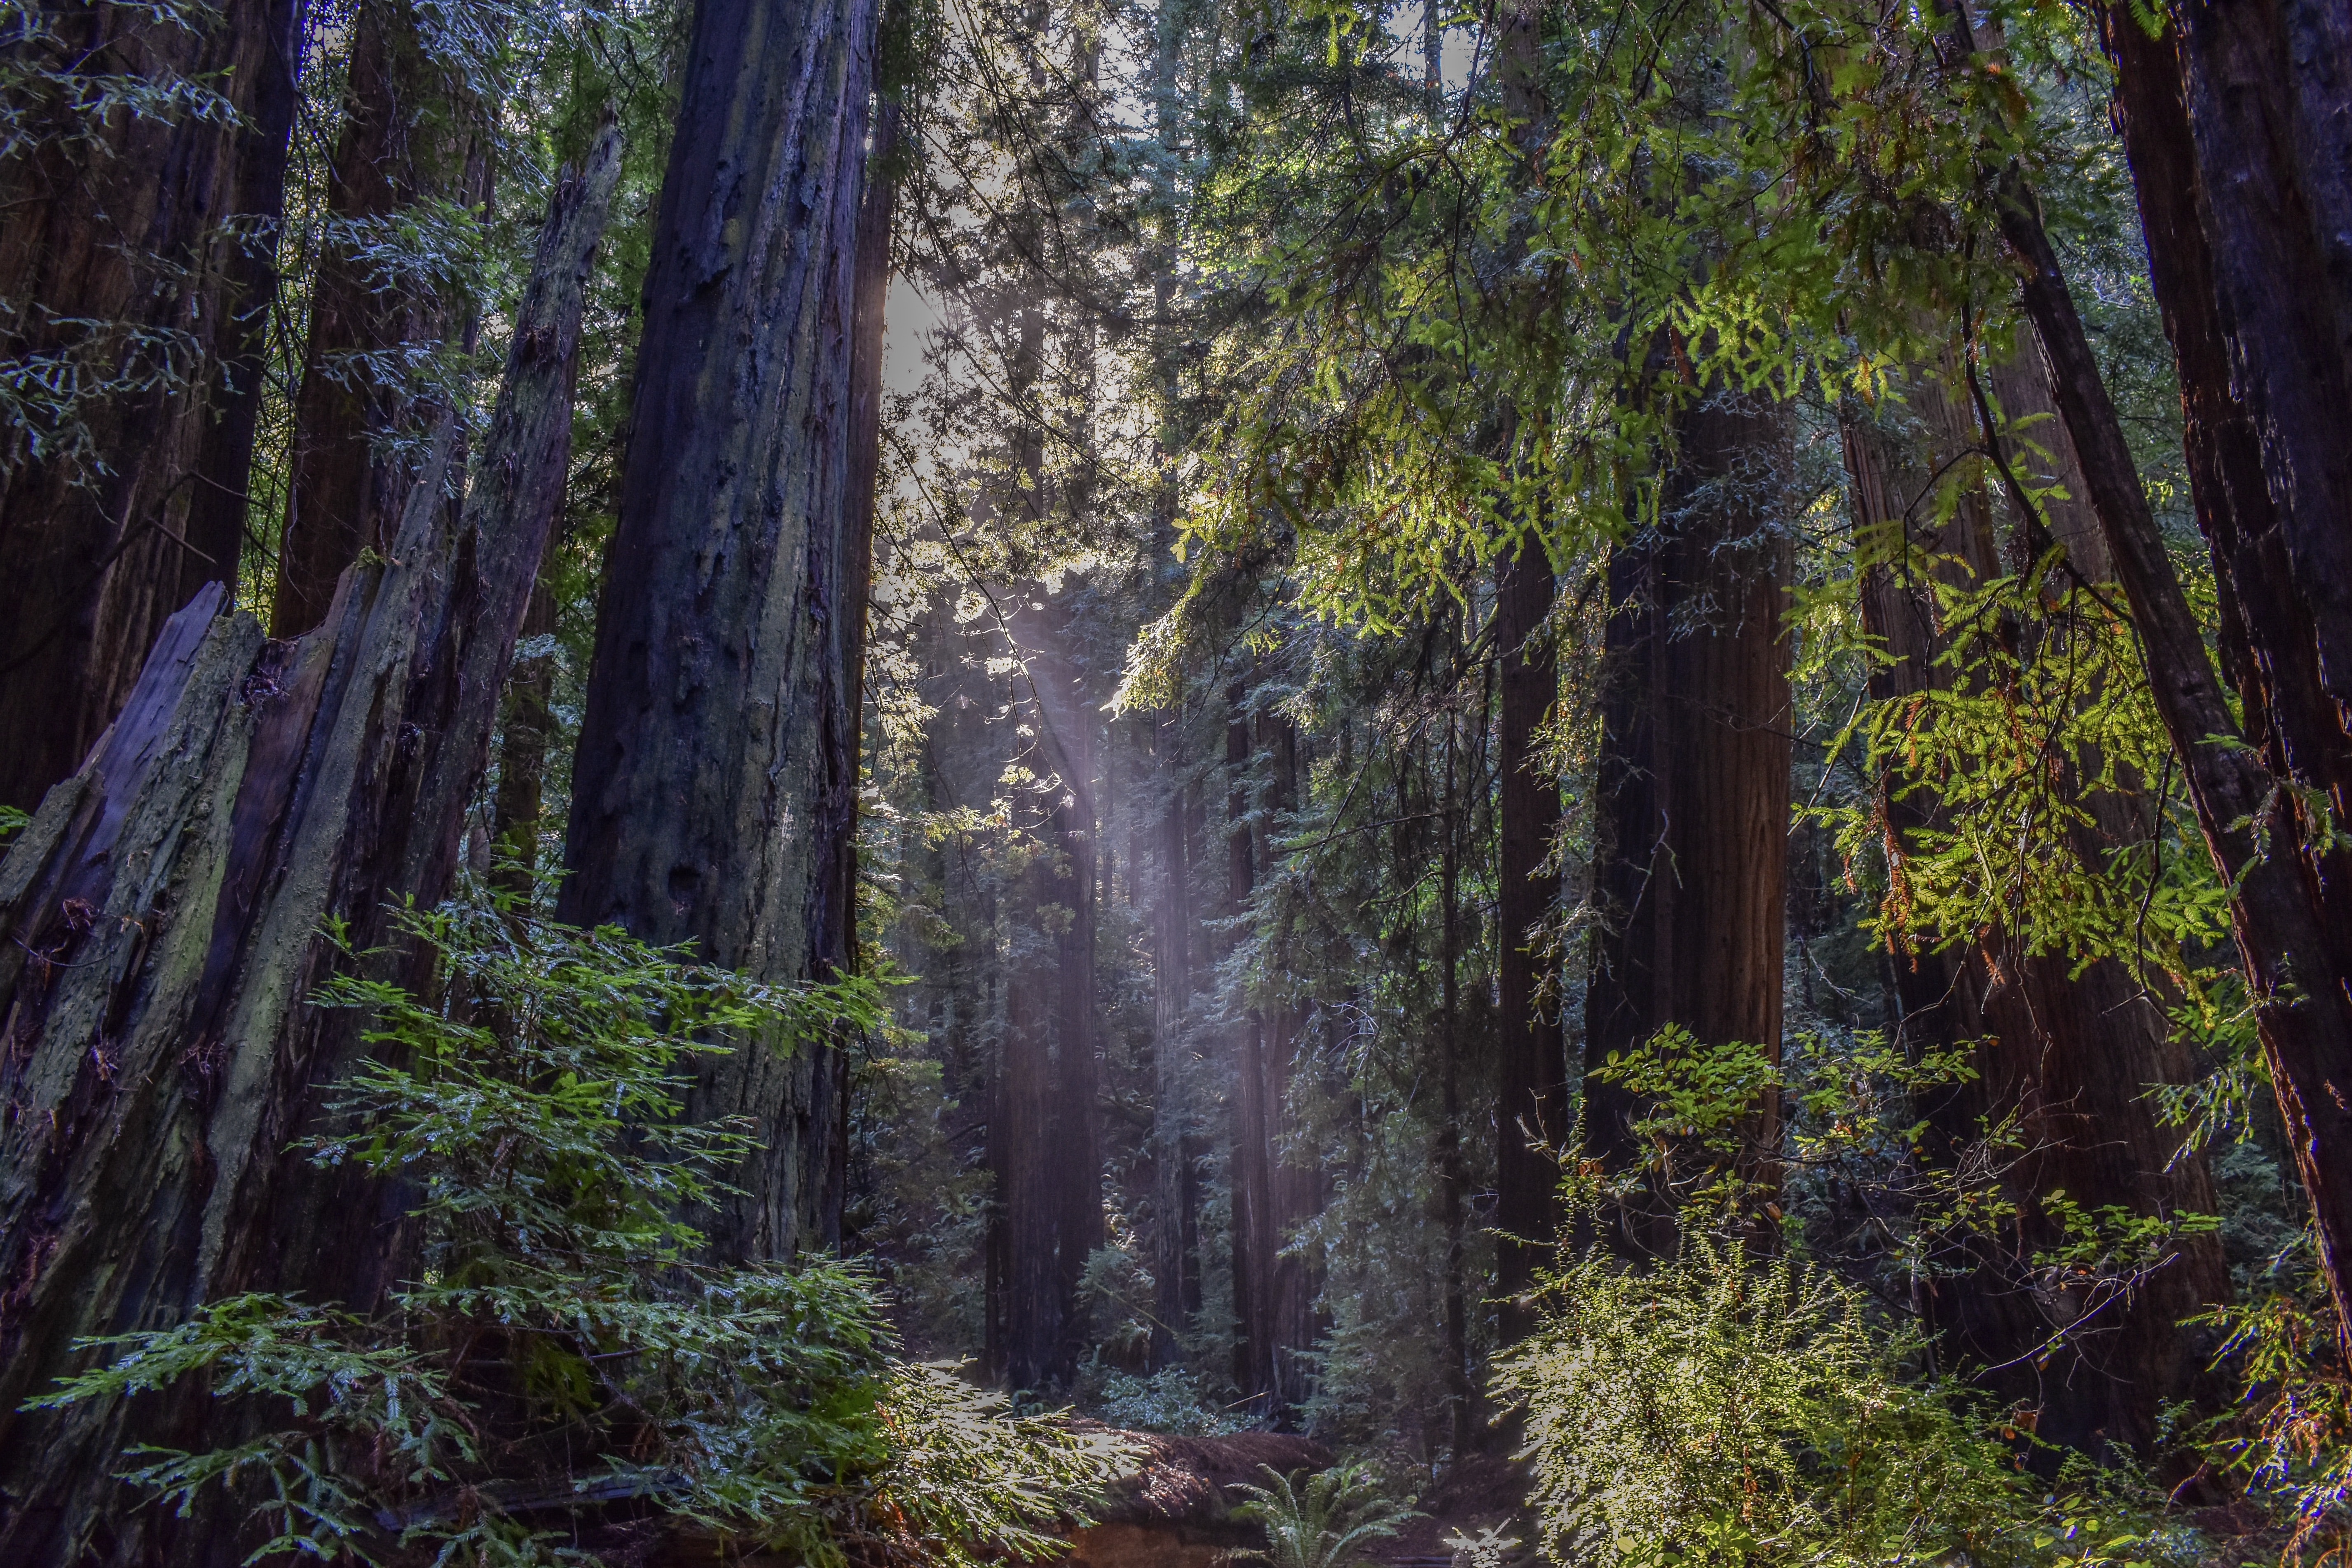 A clearing in an evergreen forest illuminated by sunlight breaking through the canopy